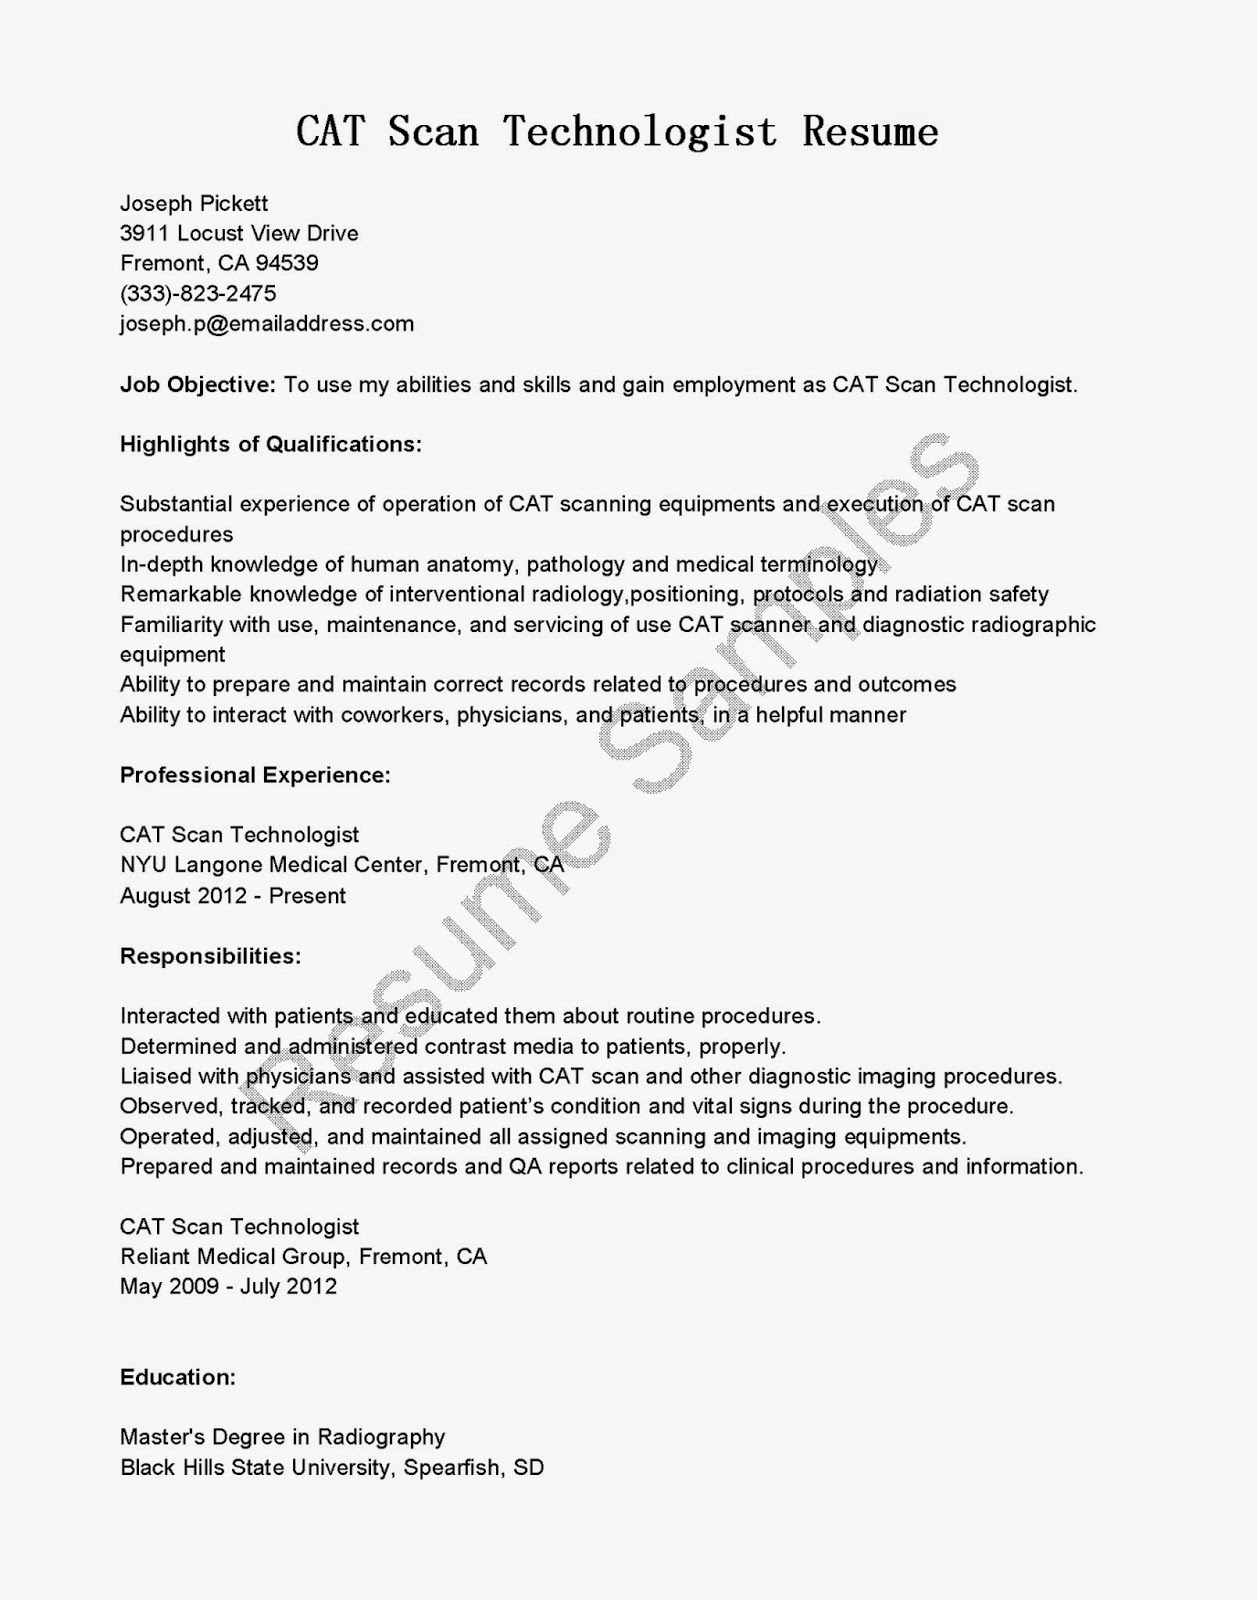 Resume Samples Cat Scan Technologist Resume Sample